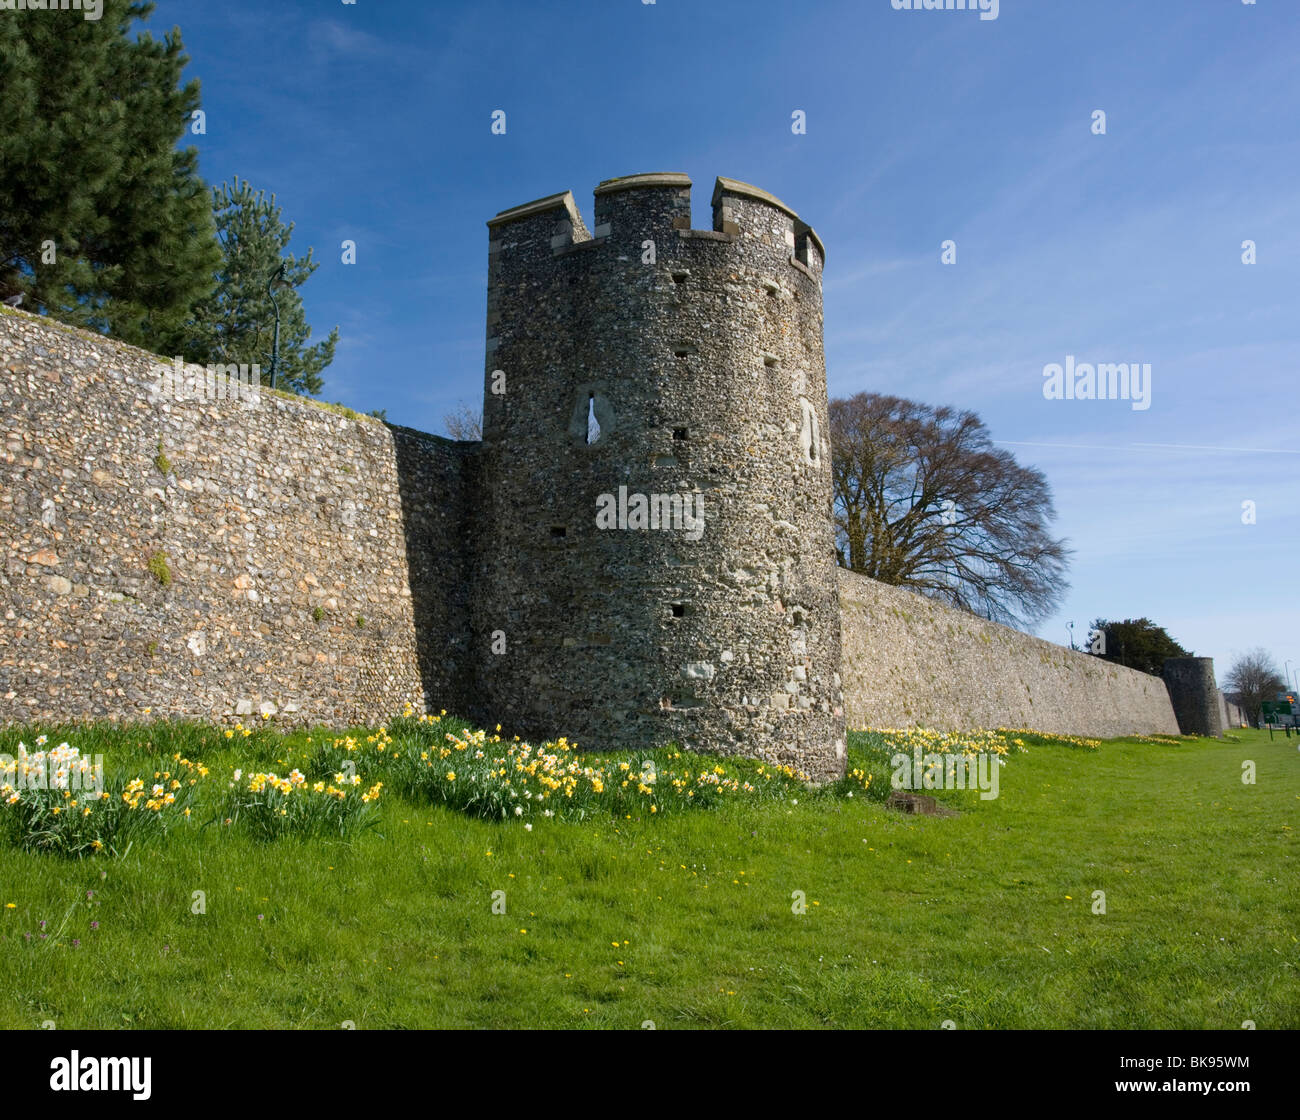 Canterbury's city wall and watch tower in Canterbury, Kent, UK. Stock Photo